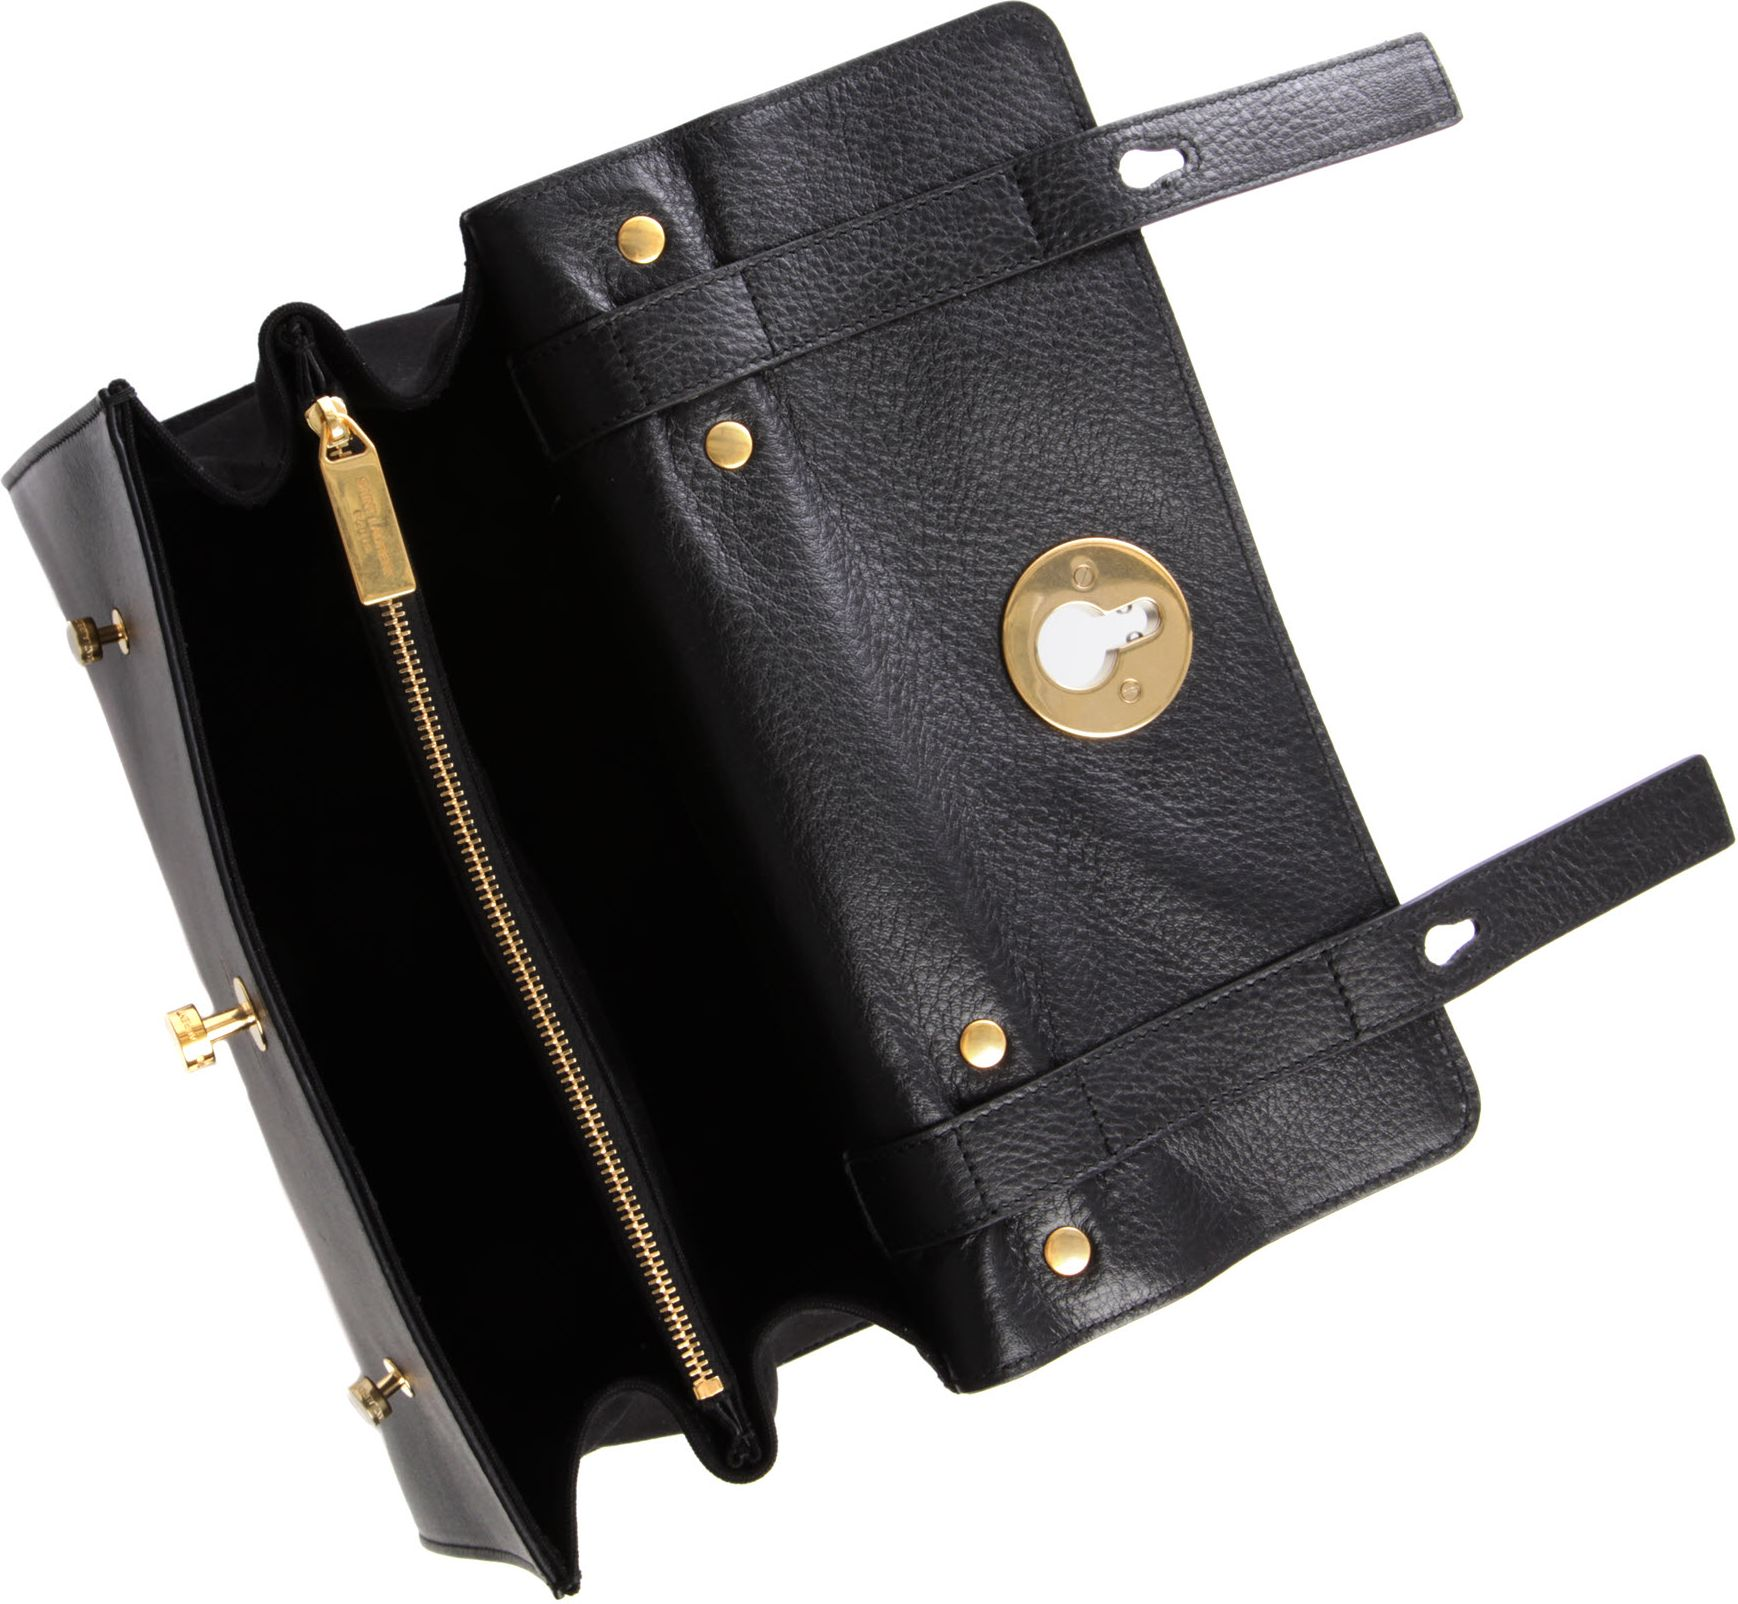 Yves Saint Laurent Muse Crossbody Bag 111